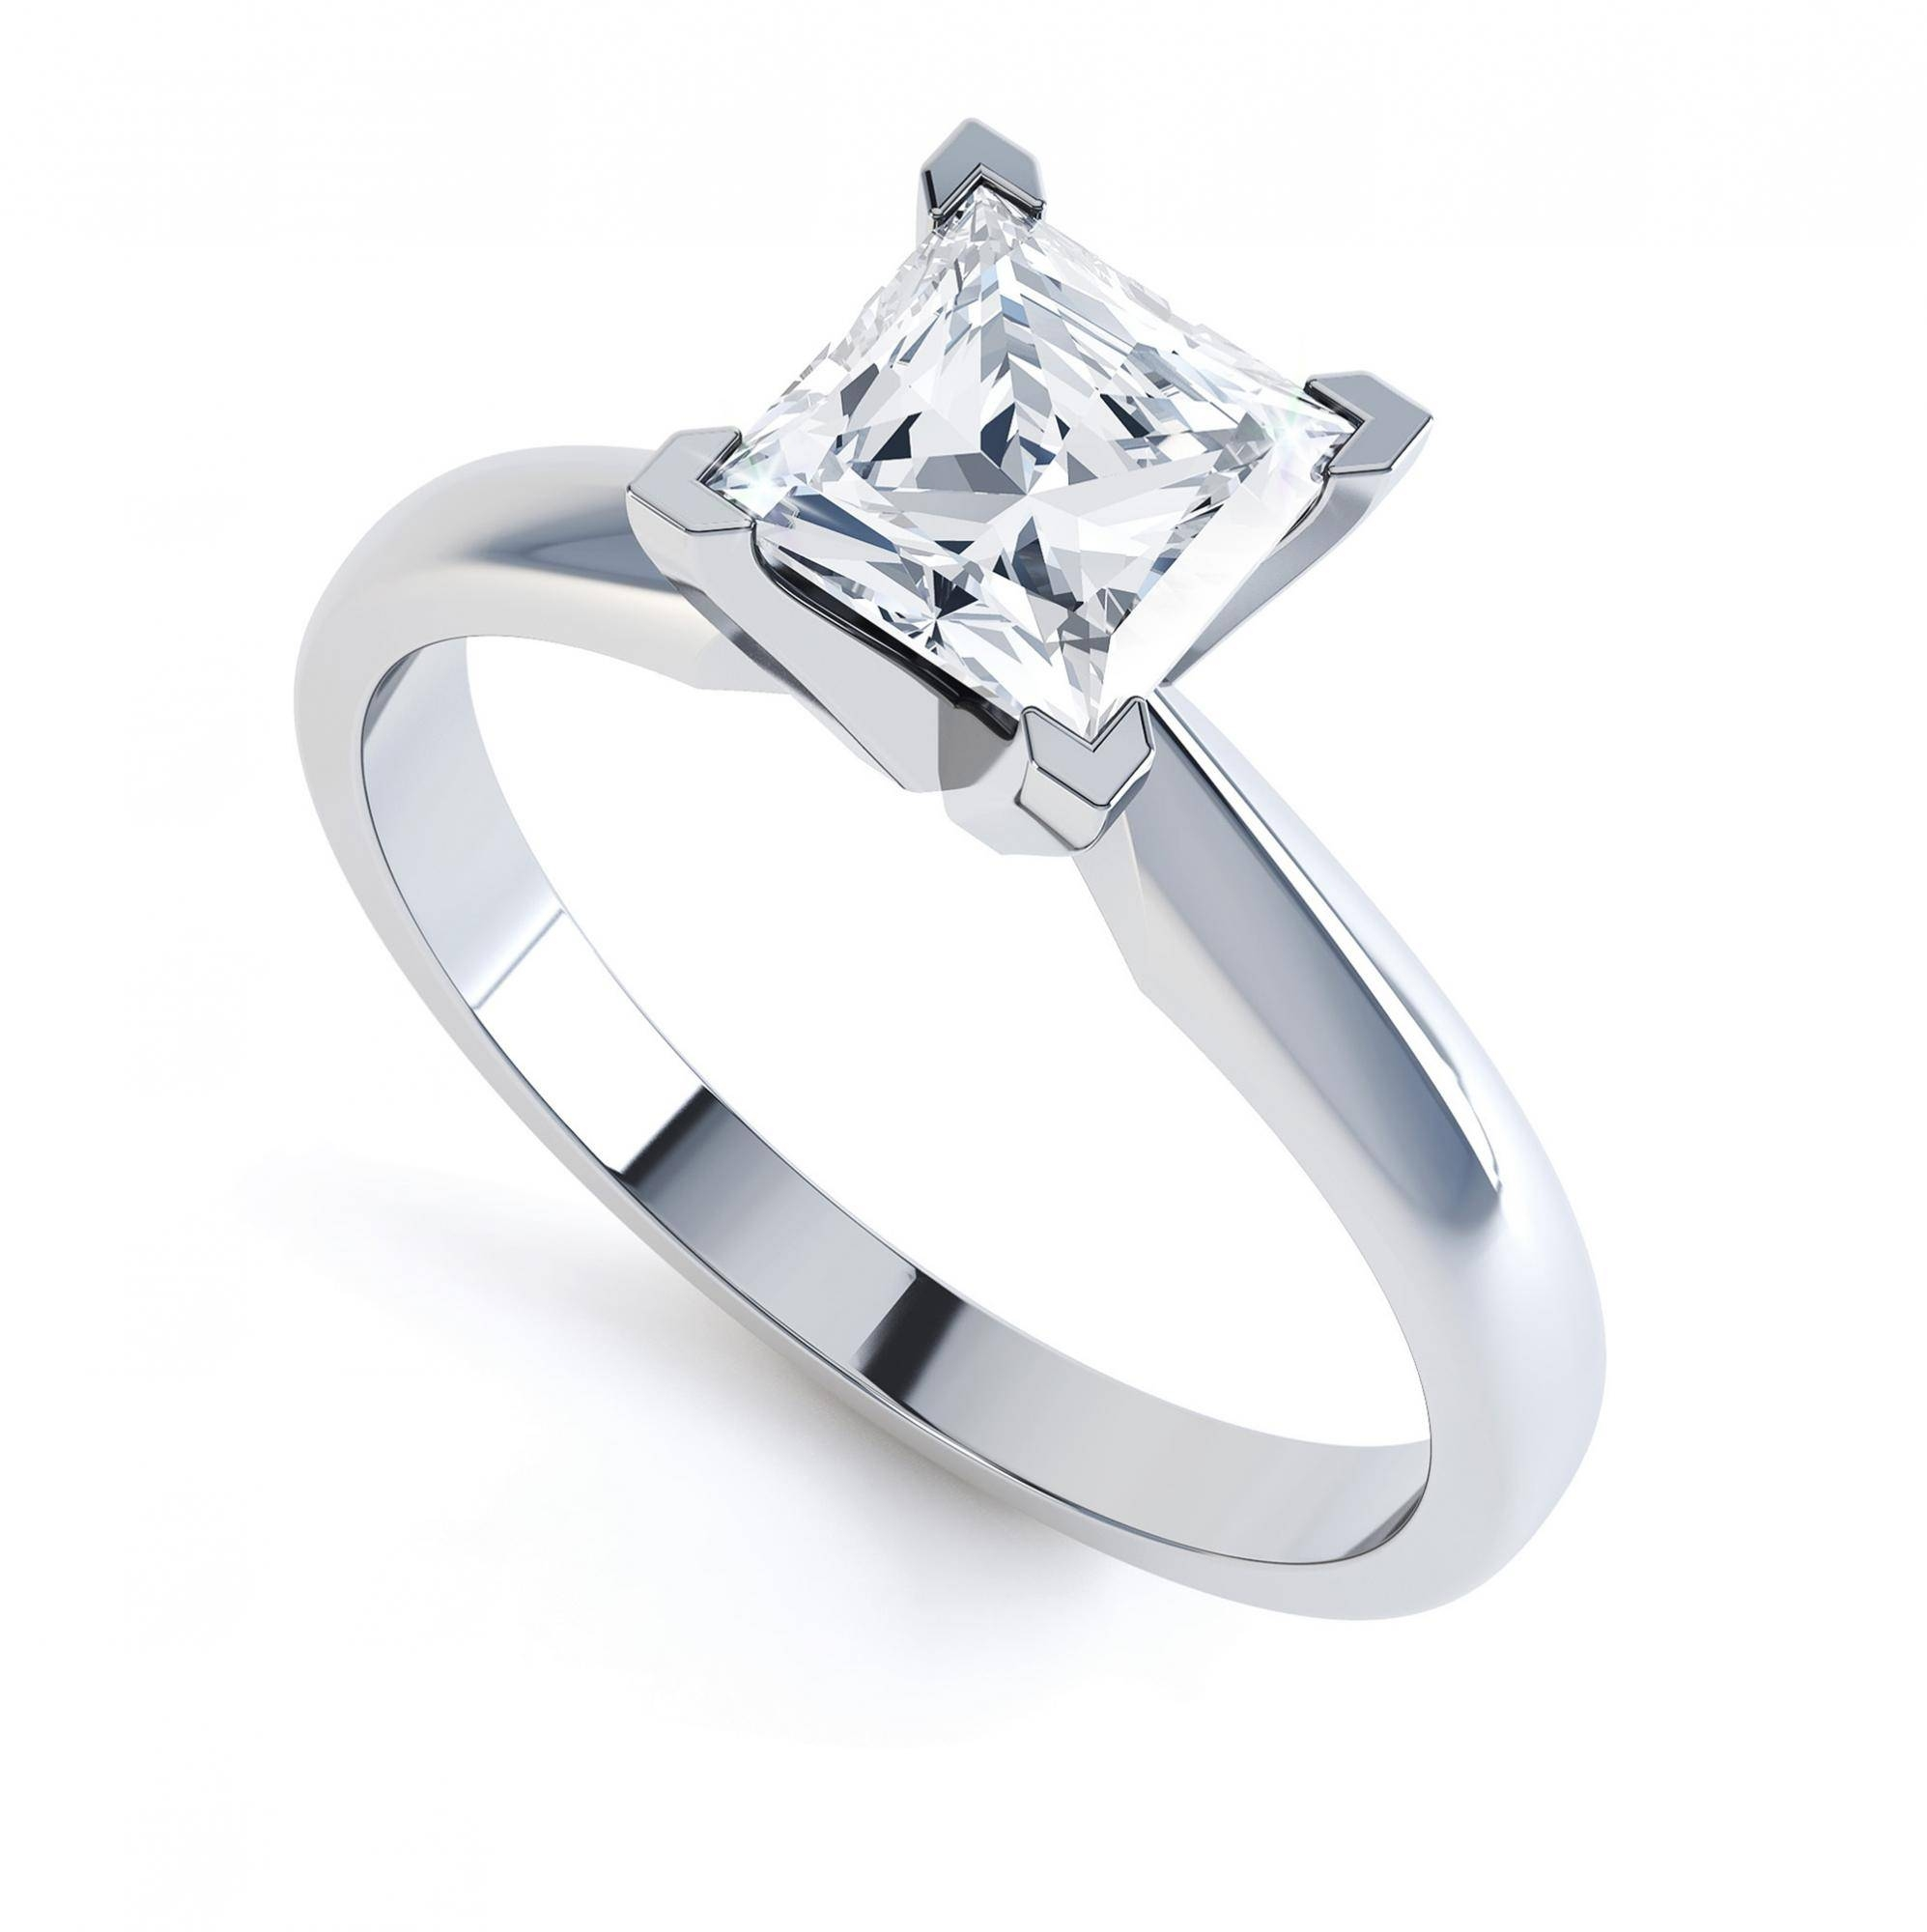 Modern 4 Claw Princess Solitaire Engagement Ring Regarding Princess Shaped Engagement Rings (View 10 of 15)